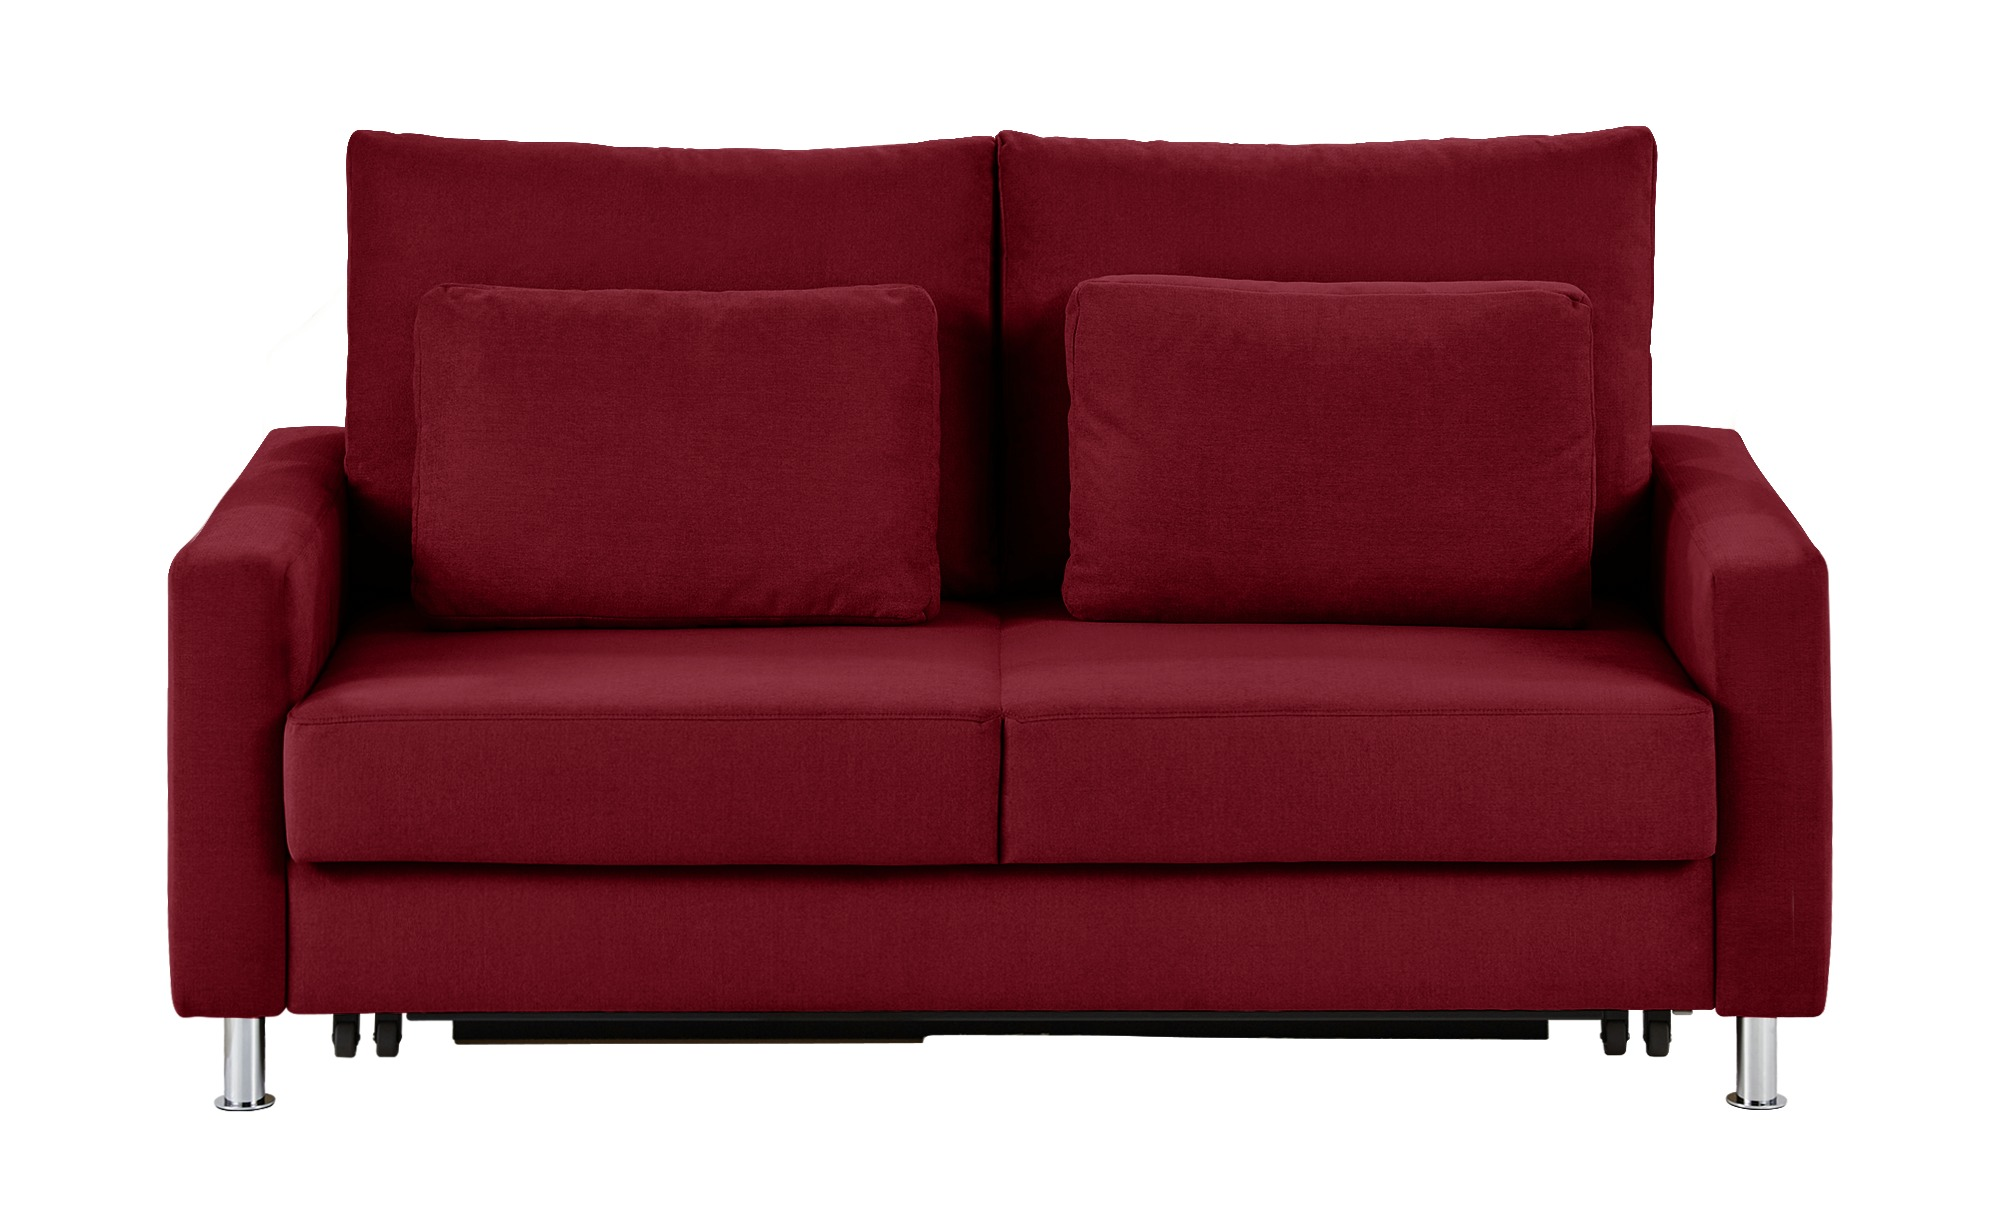 Schlafcouch Mit Bettkasten Kaufen Gunstige Schlafsofas Mit Bettkasten Cheap Patio Furniture Big Lots Wooden Sof In 2020 Schlafsofa Sofa Schlafsofa Mit Bettkasten